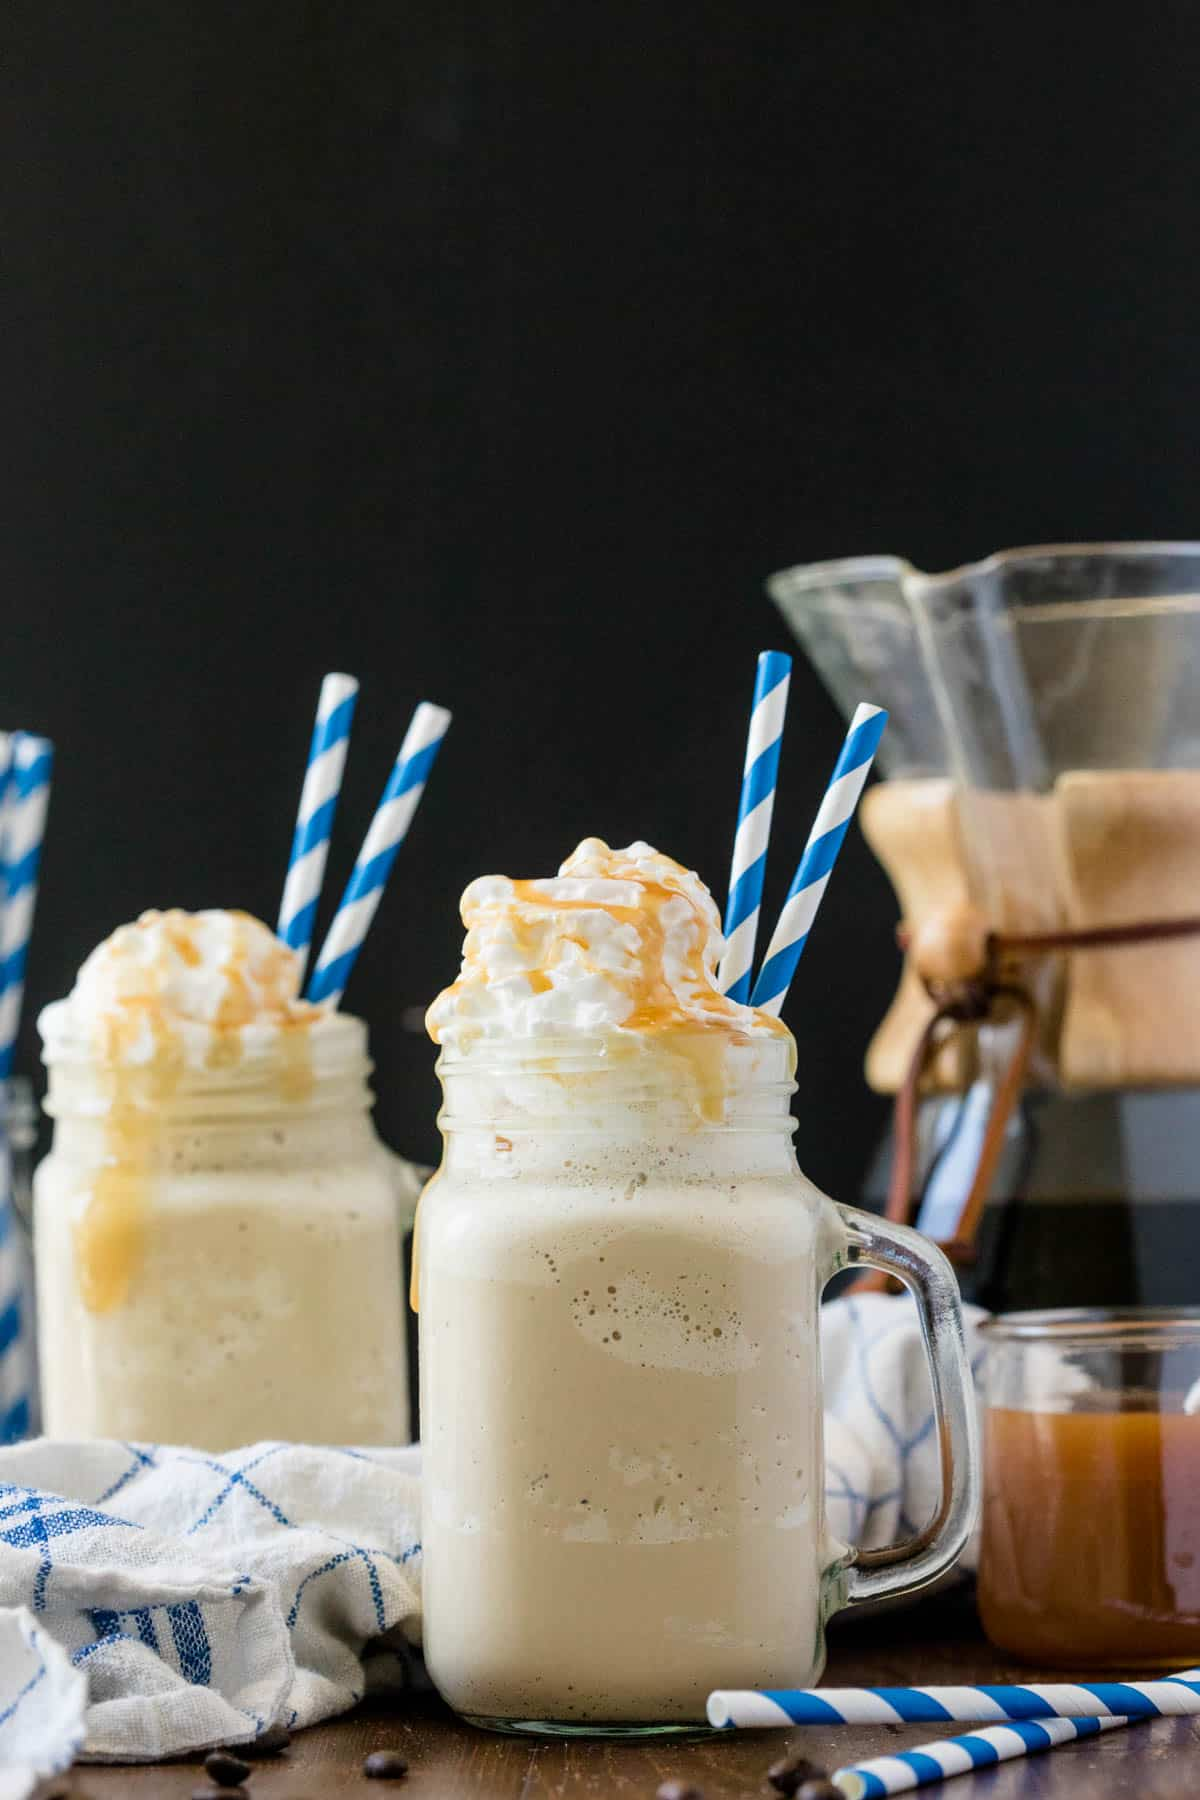 Caramel Coffee Milkshake - Freshly brewed coffee, caramel and vanilla ice cream make the ultimate milkshake. This is the perfect sweet indulgence and caffeine jolt, blended into one delicious treat.